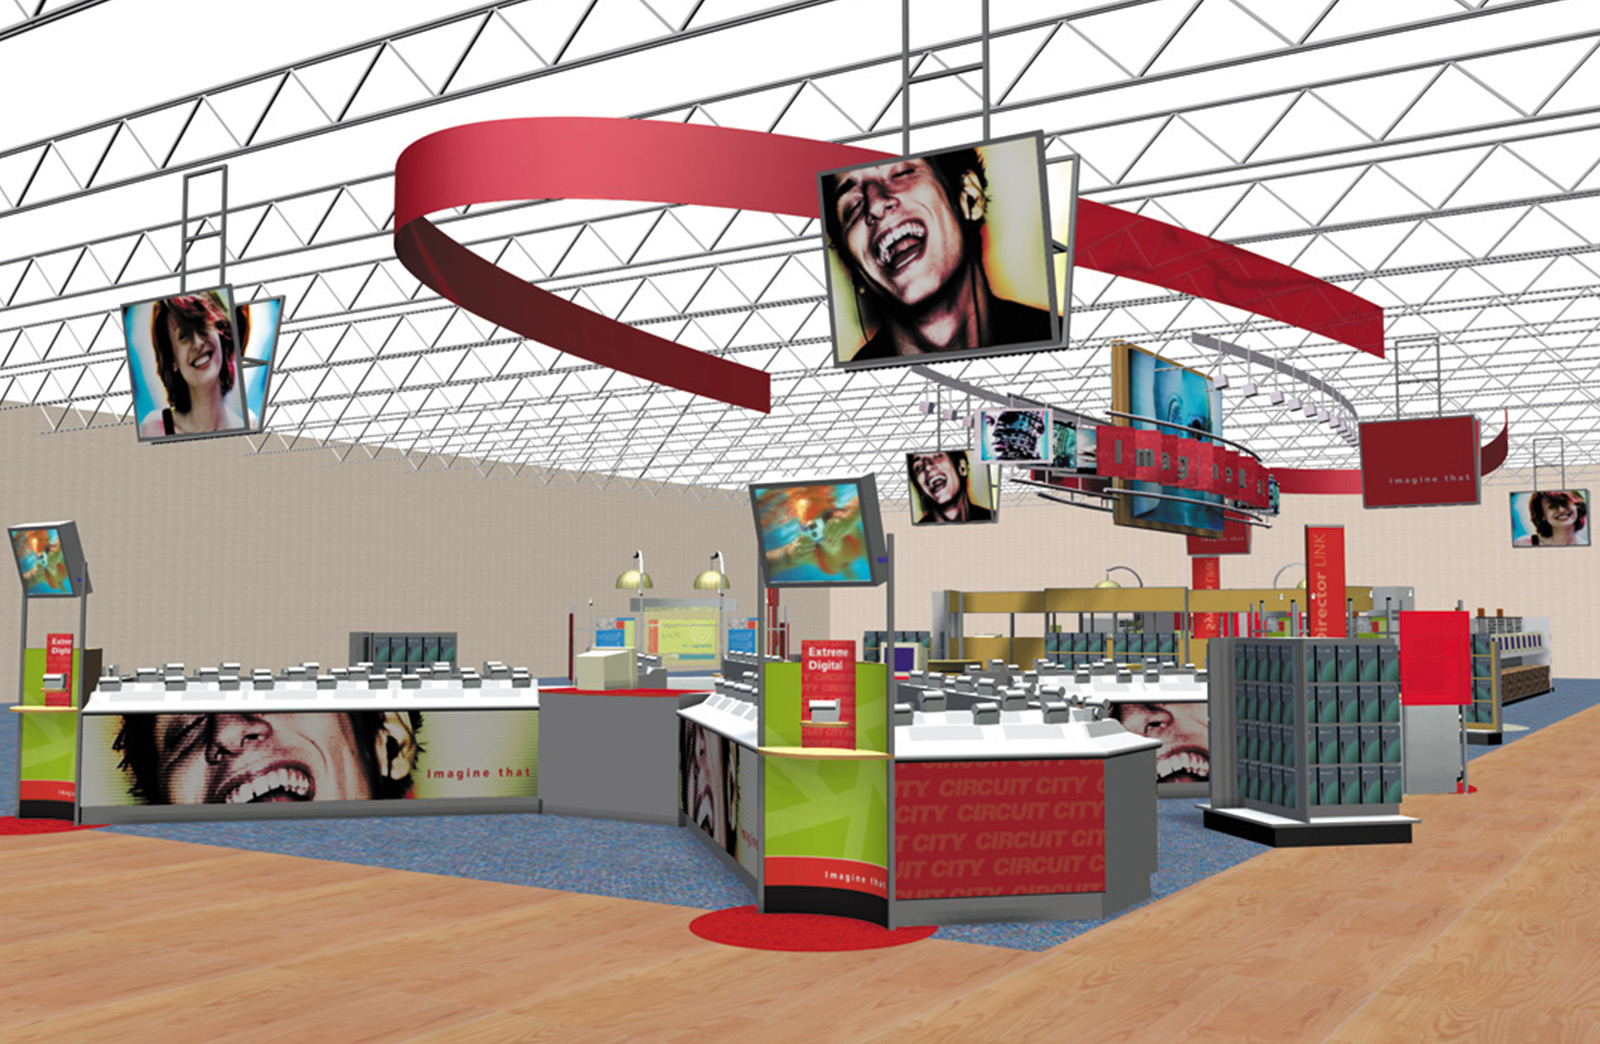 Circuit City Concept Store Redesign